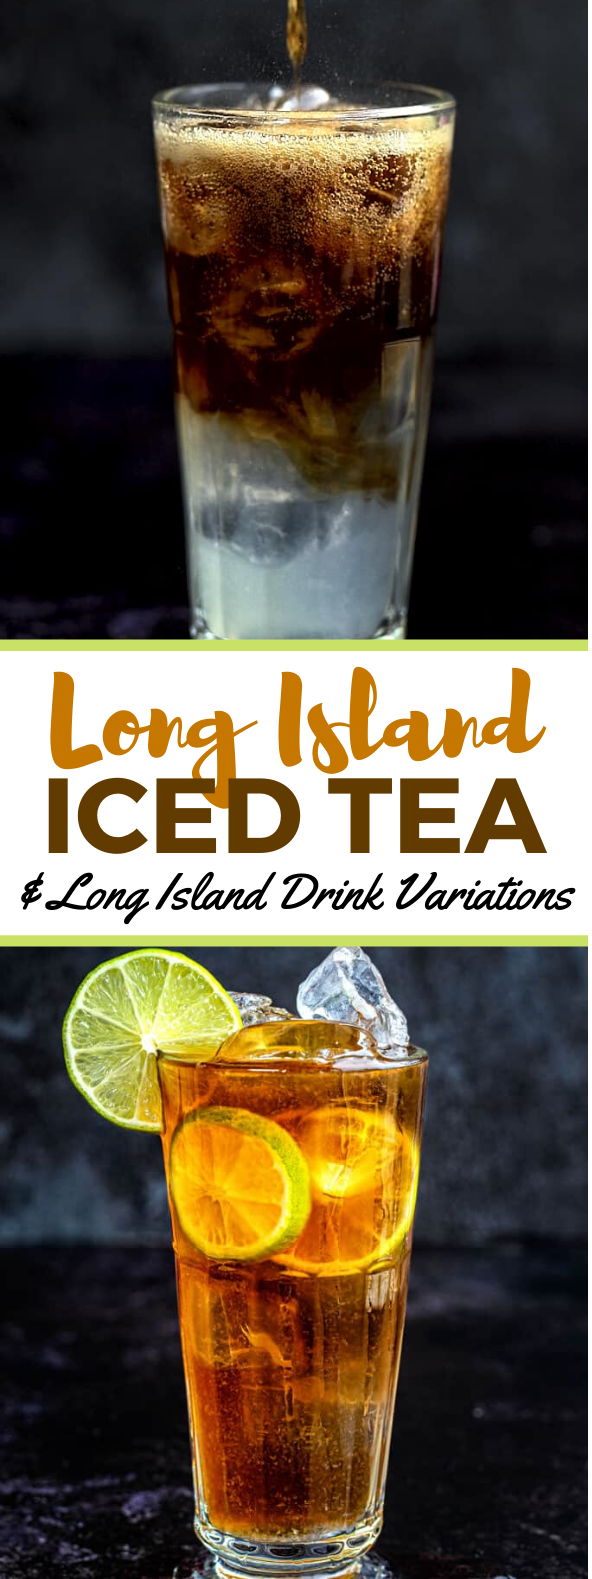 LONG ISLAND ICED TEA & LONG ISLAND DRINK VARIATIONS #drinks #vodka